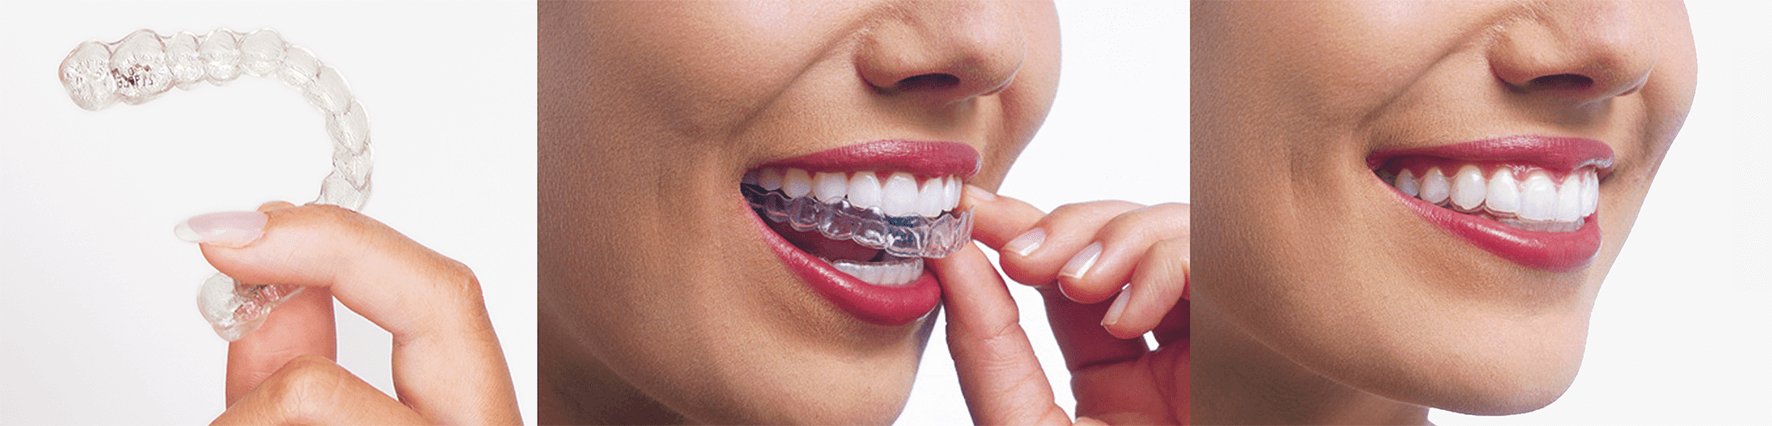 Invisalign In London The Clear Alternative To